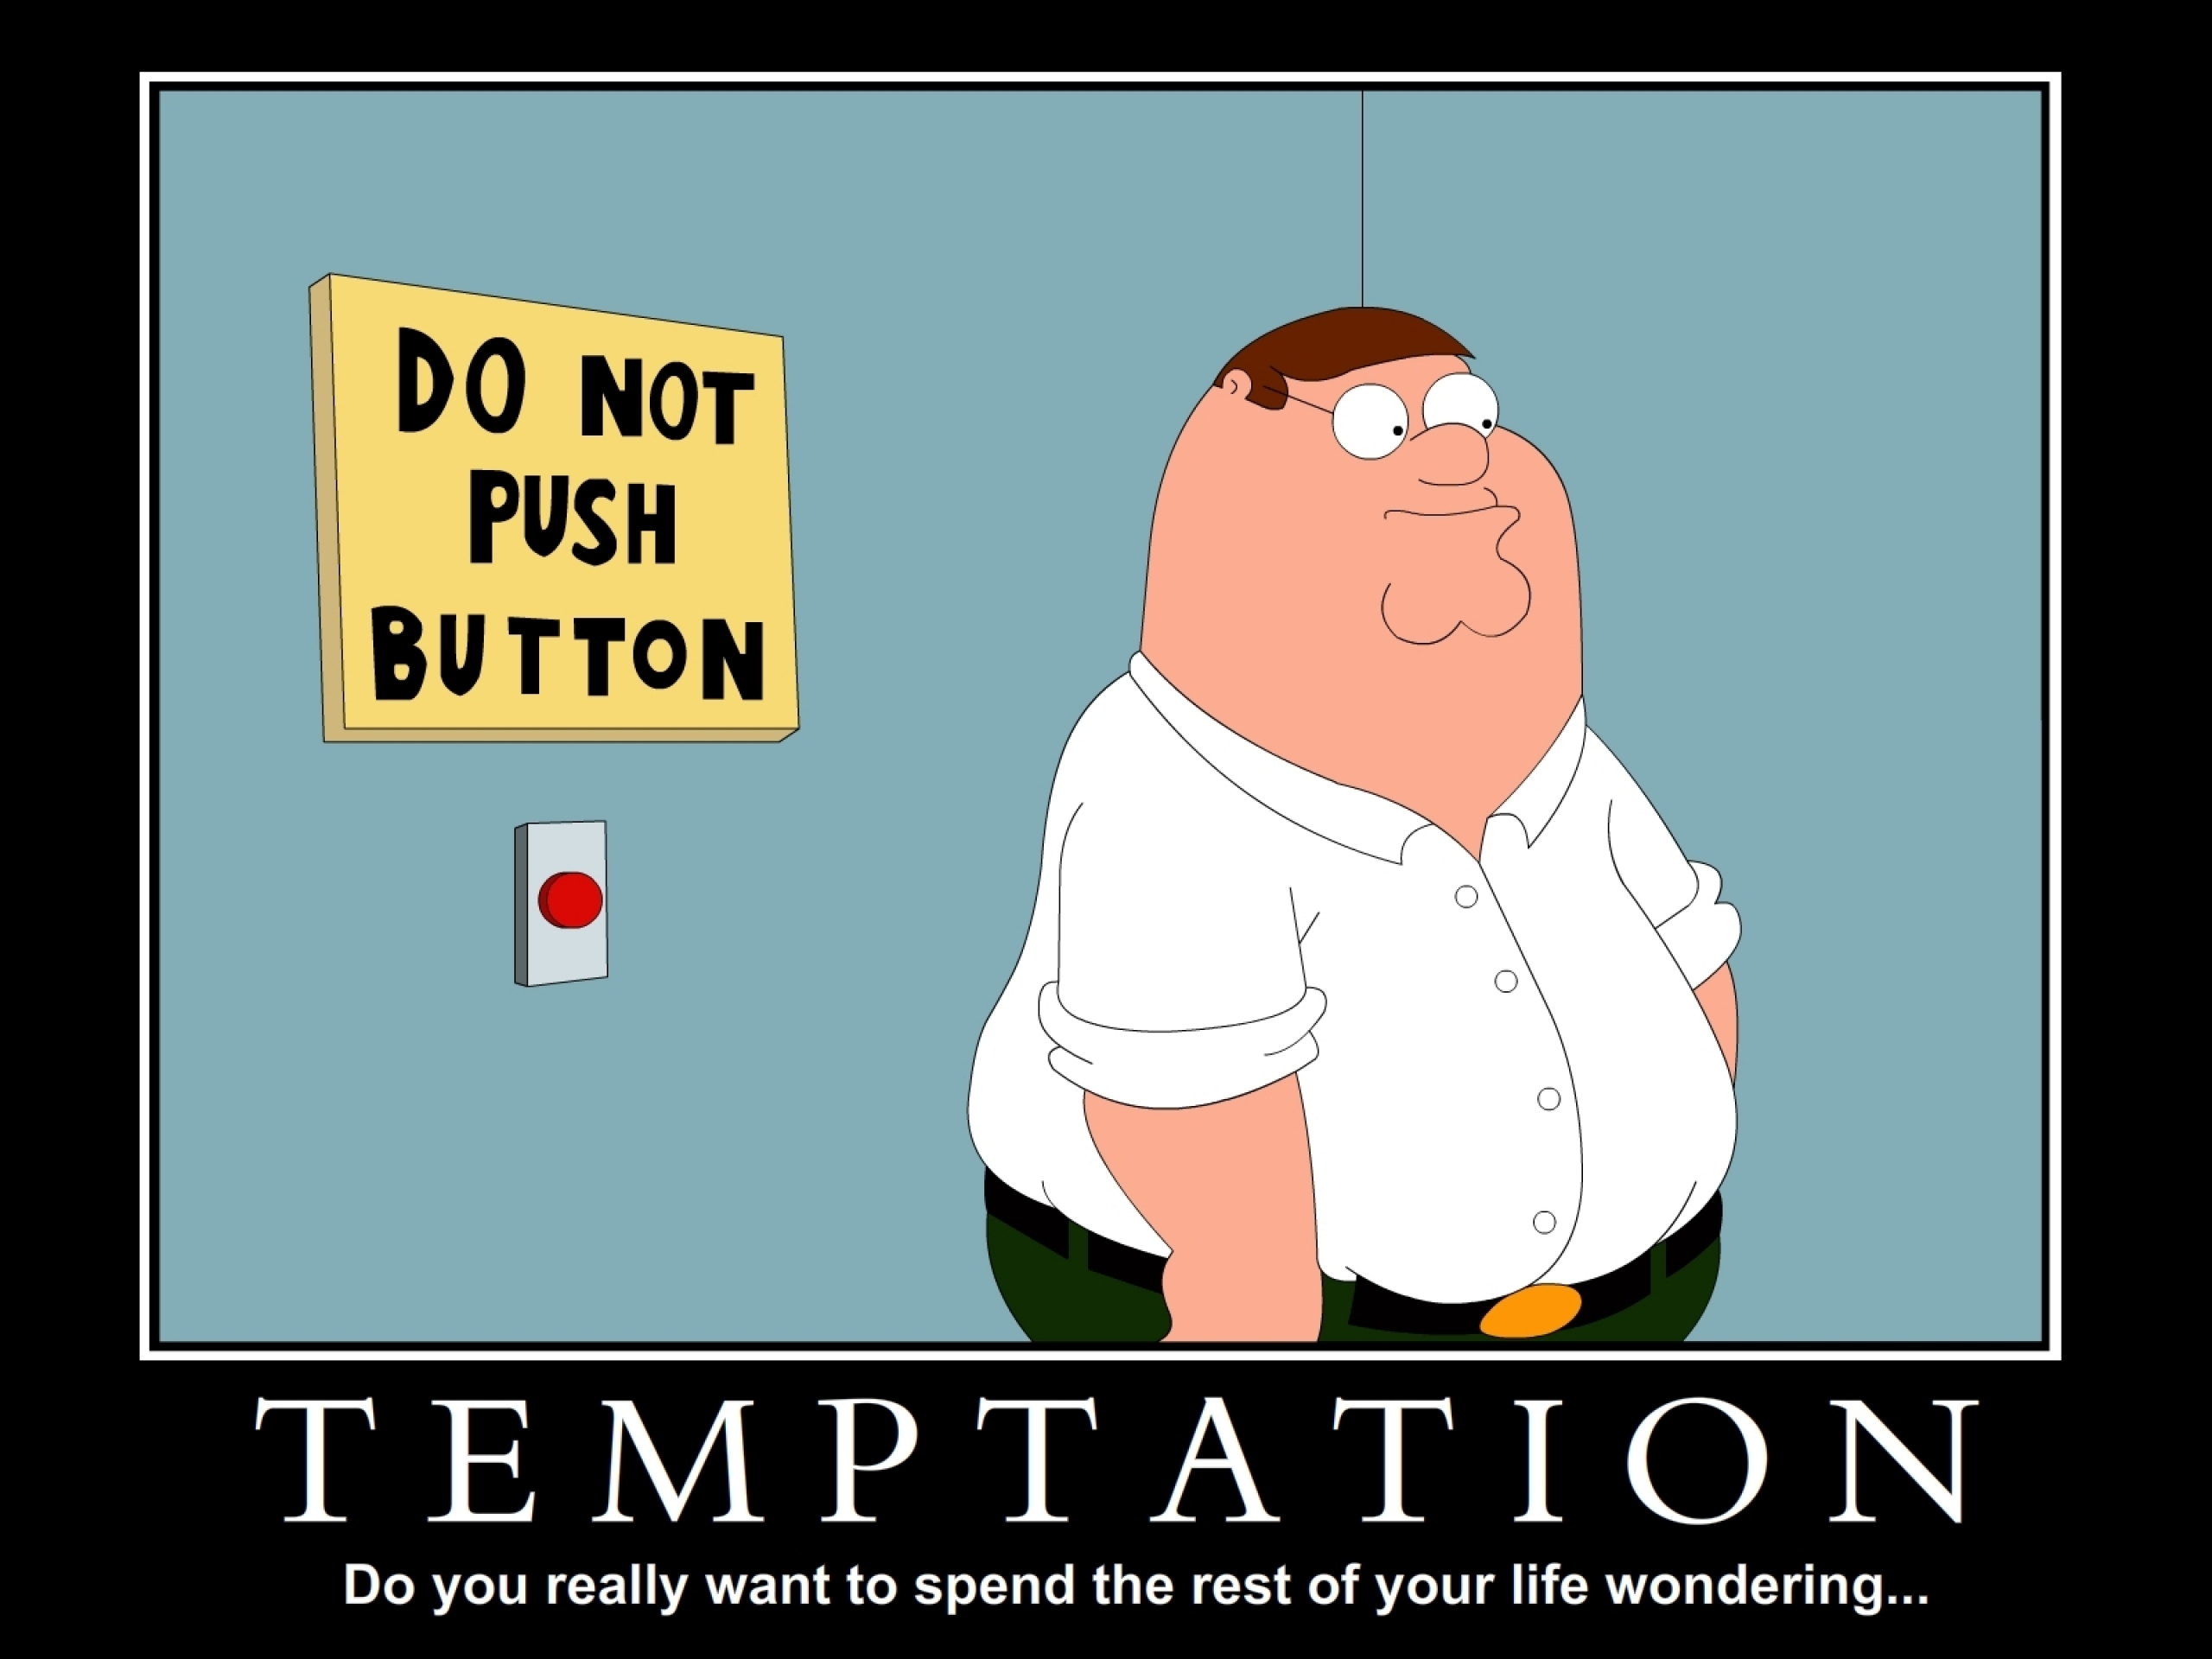 Motivational Sports Quotes Wallpaper Peter S Temptation Wallpaper Family Guy Faxo